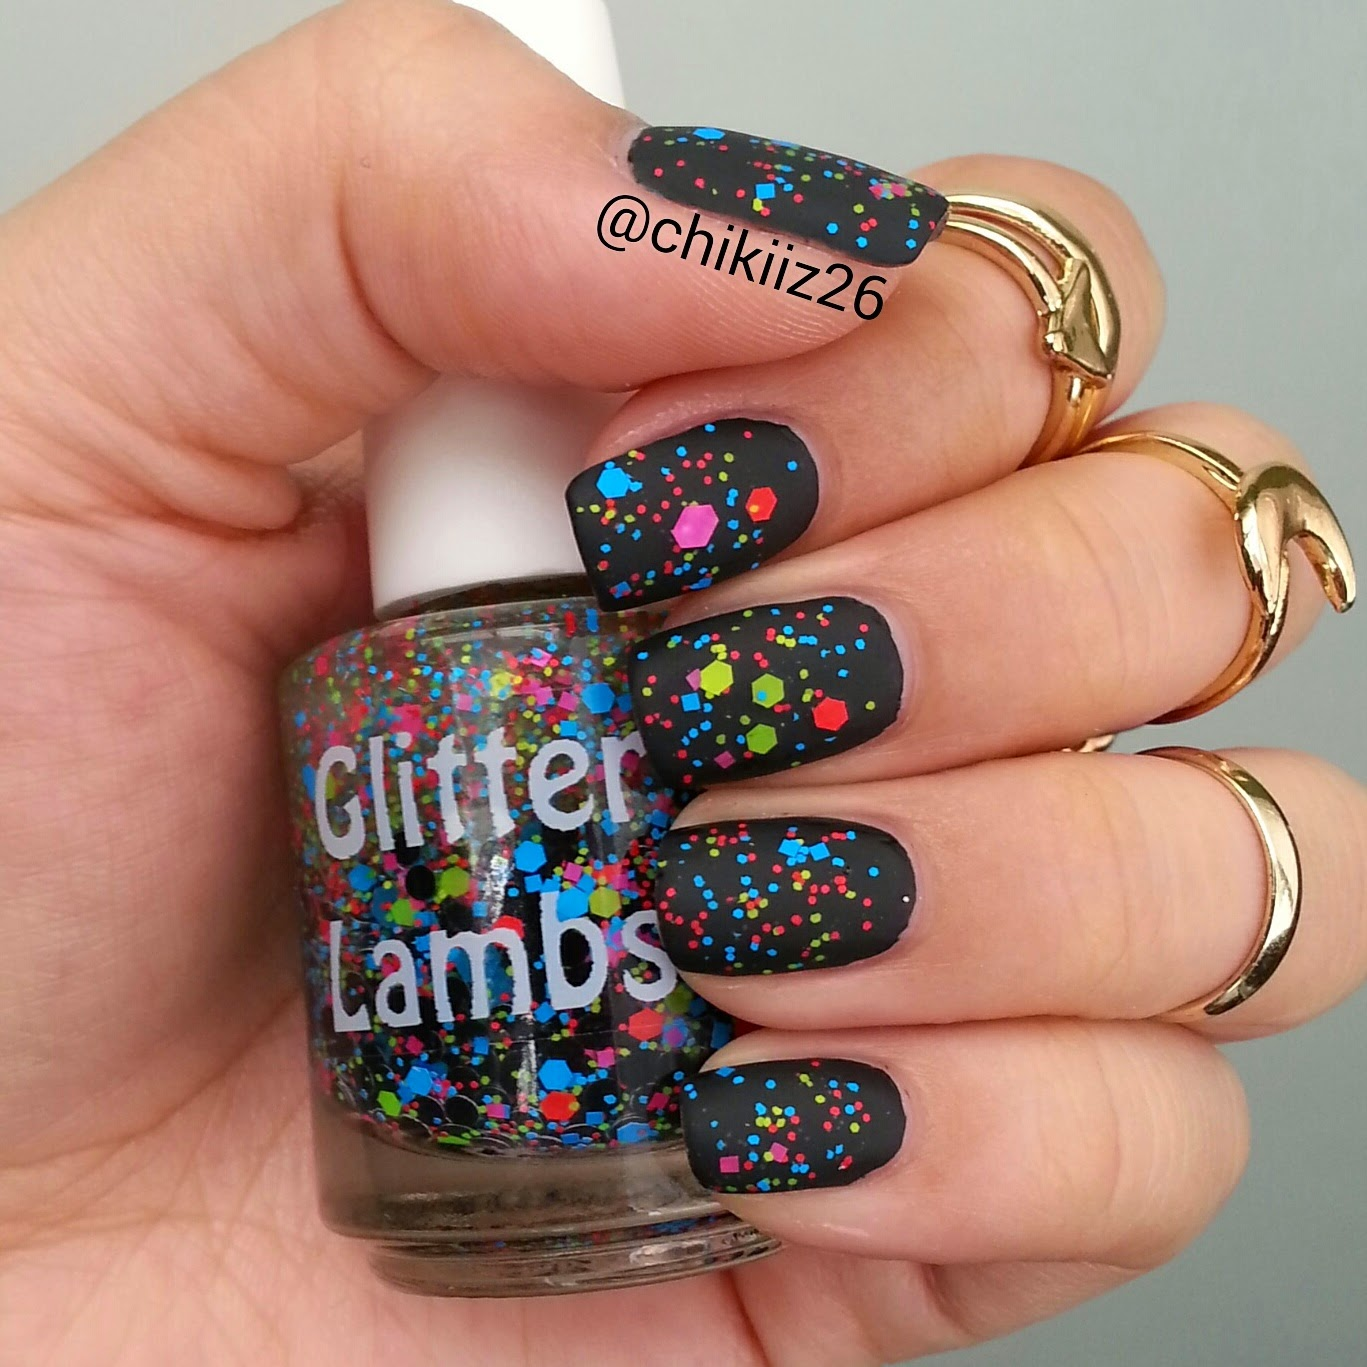 Gumball Land Glitter Lambs Nail Polish  Worn by @Chikiiz26